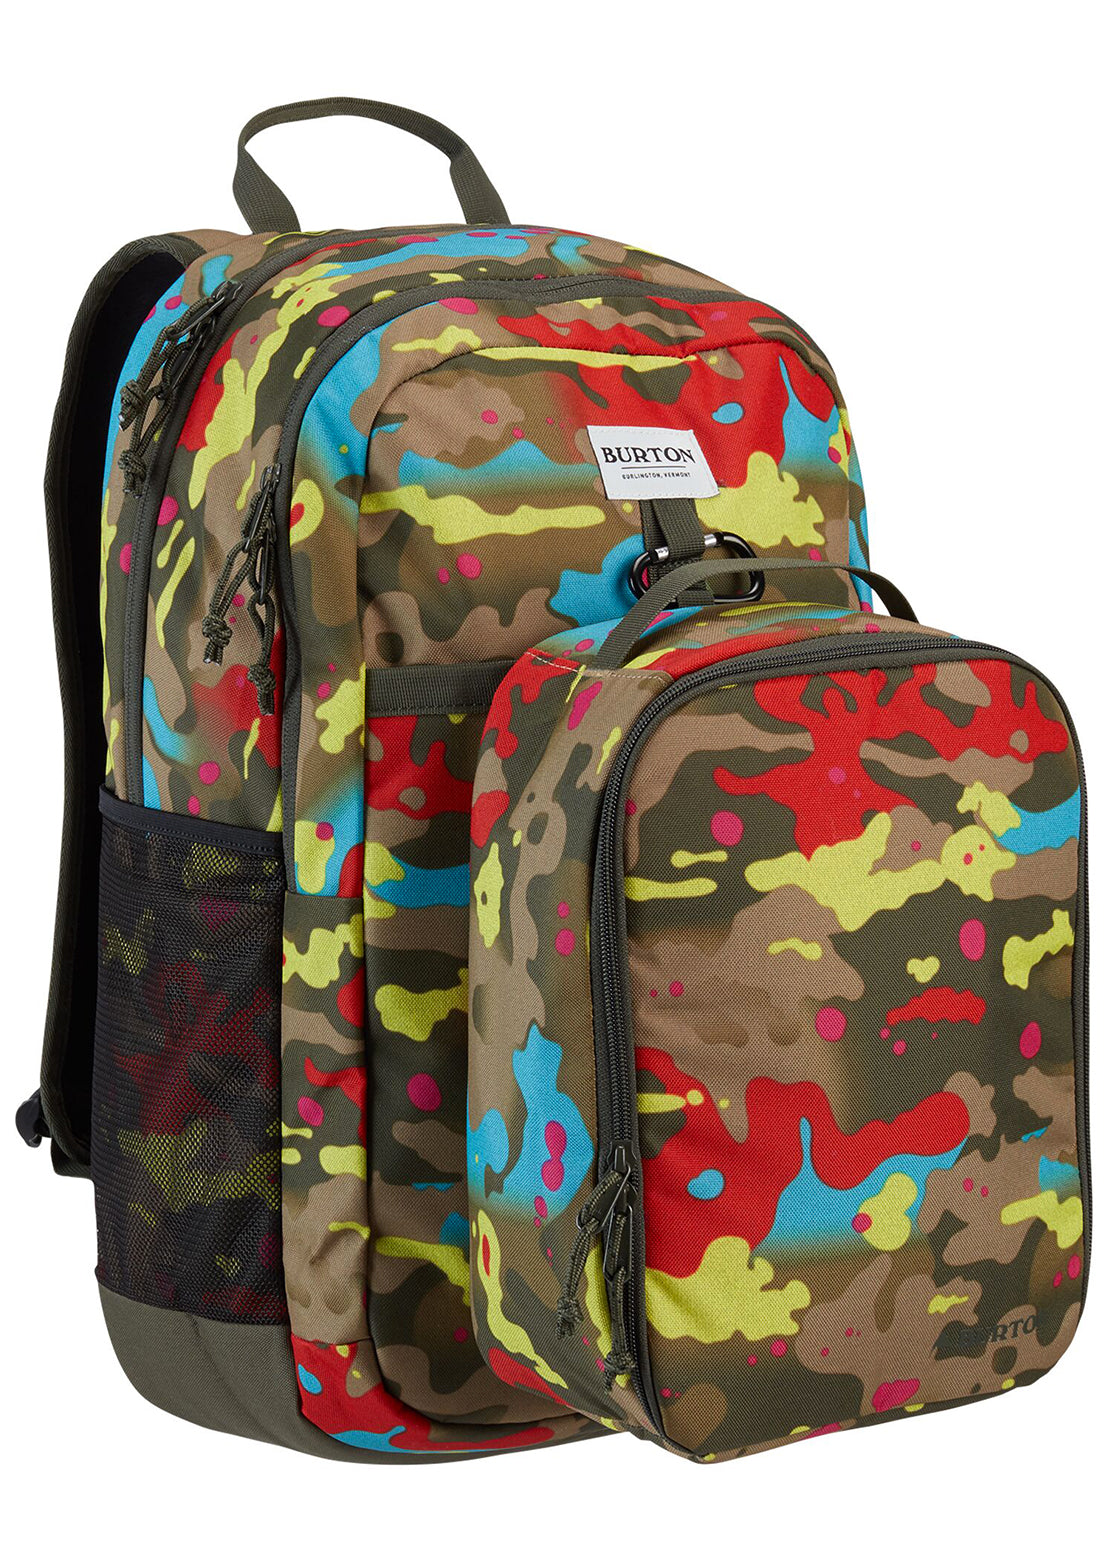 Burton Junior Lunch-N-Pack 35L Backpack Bright Birch Camo Print